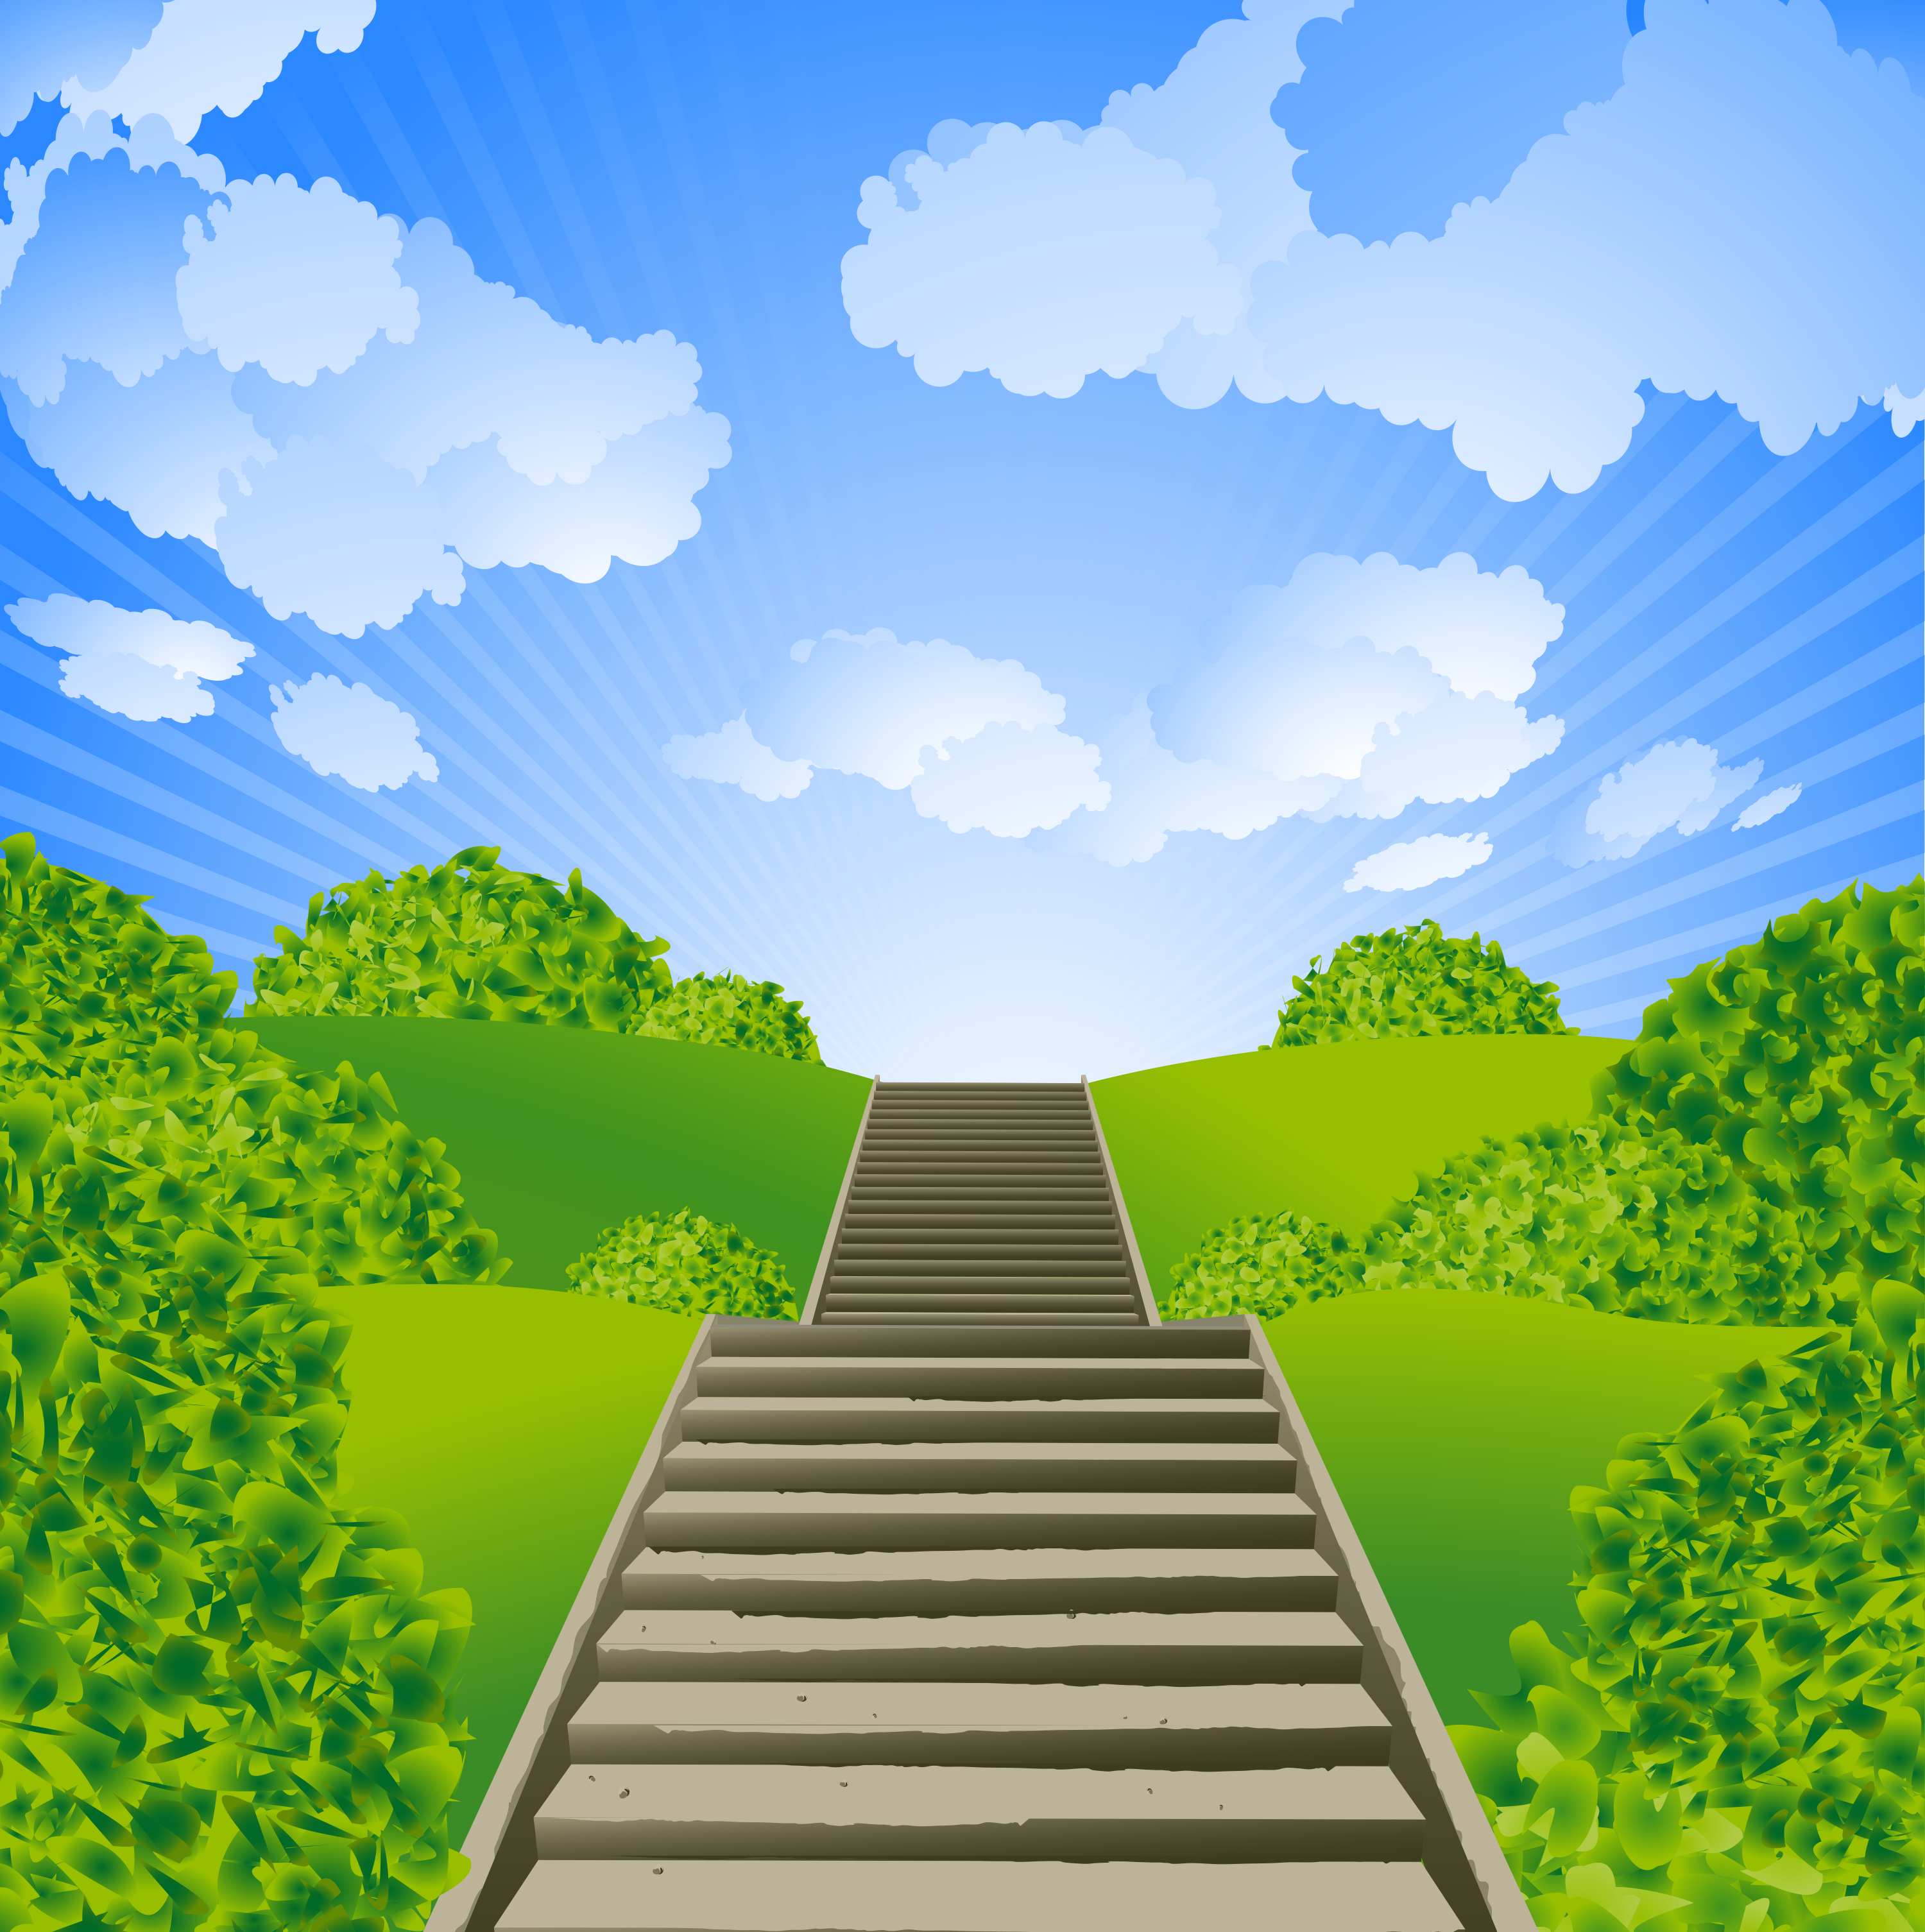 Staircase in an Article About the Justice and Mental Health Collaboration Grant